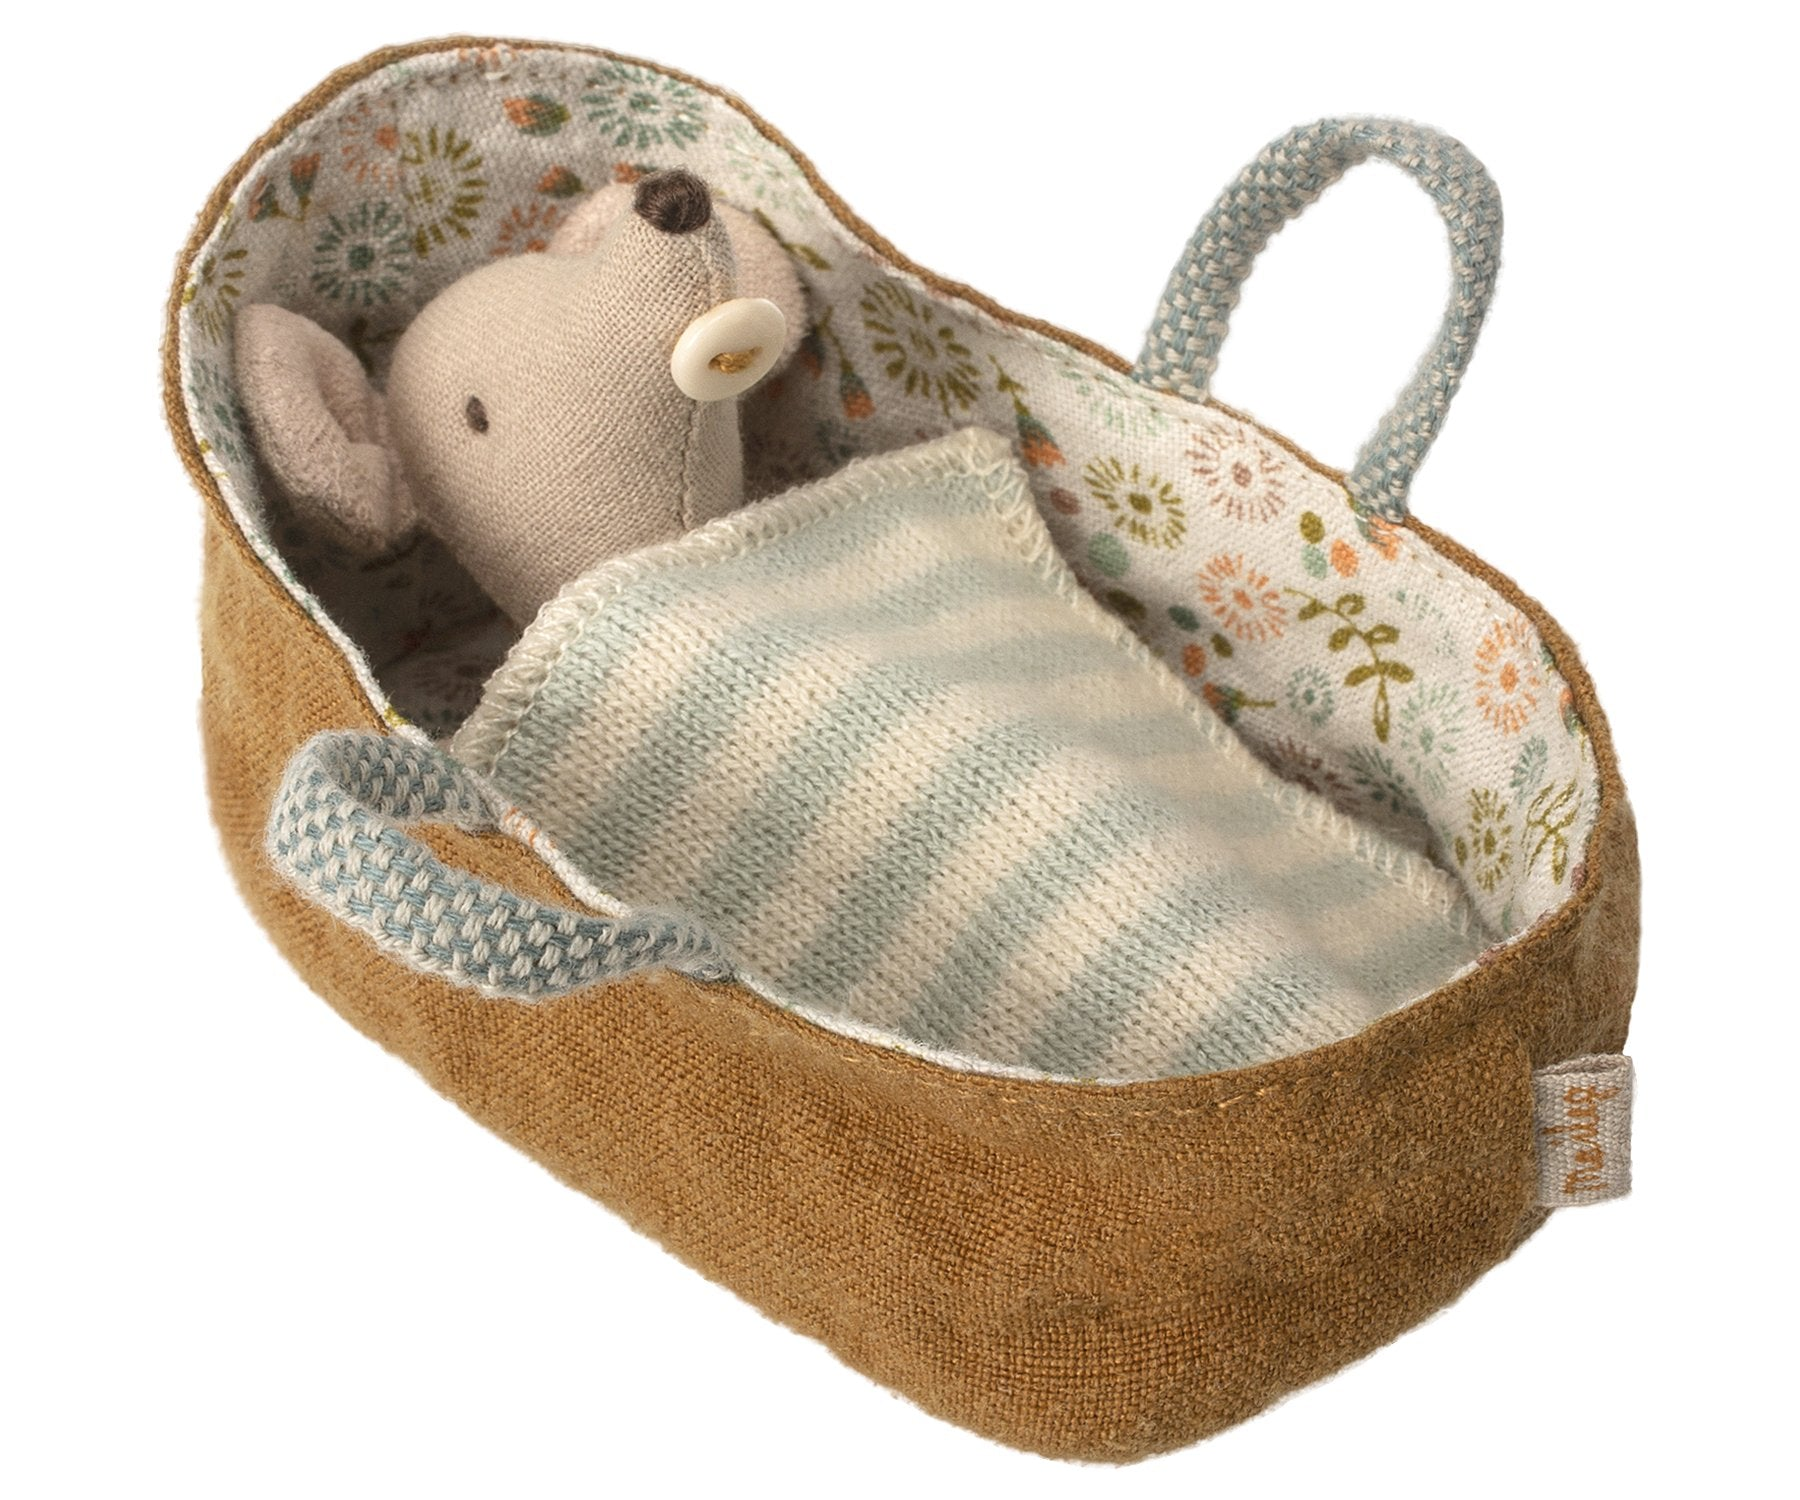 Baby Mouse Stuffed Animal in a Carrycot